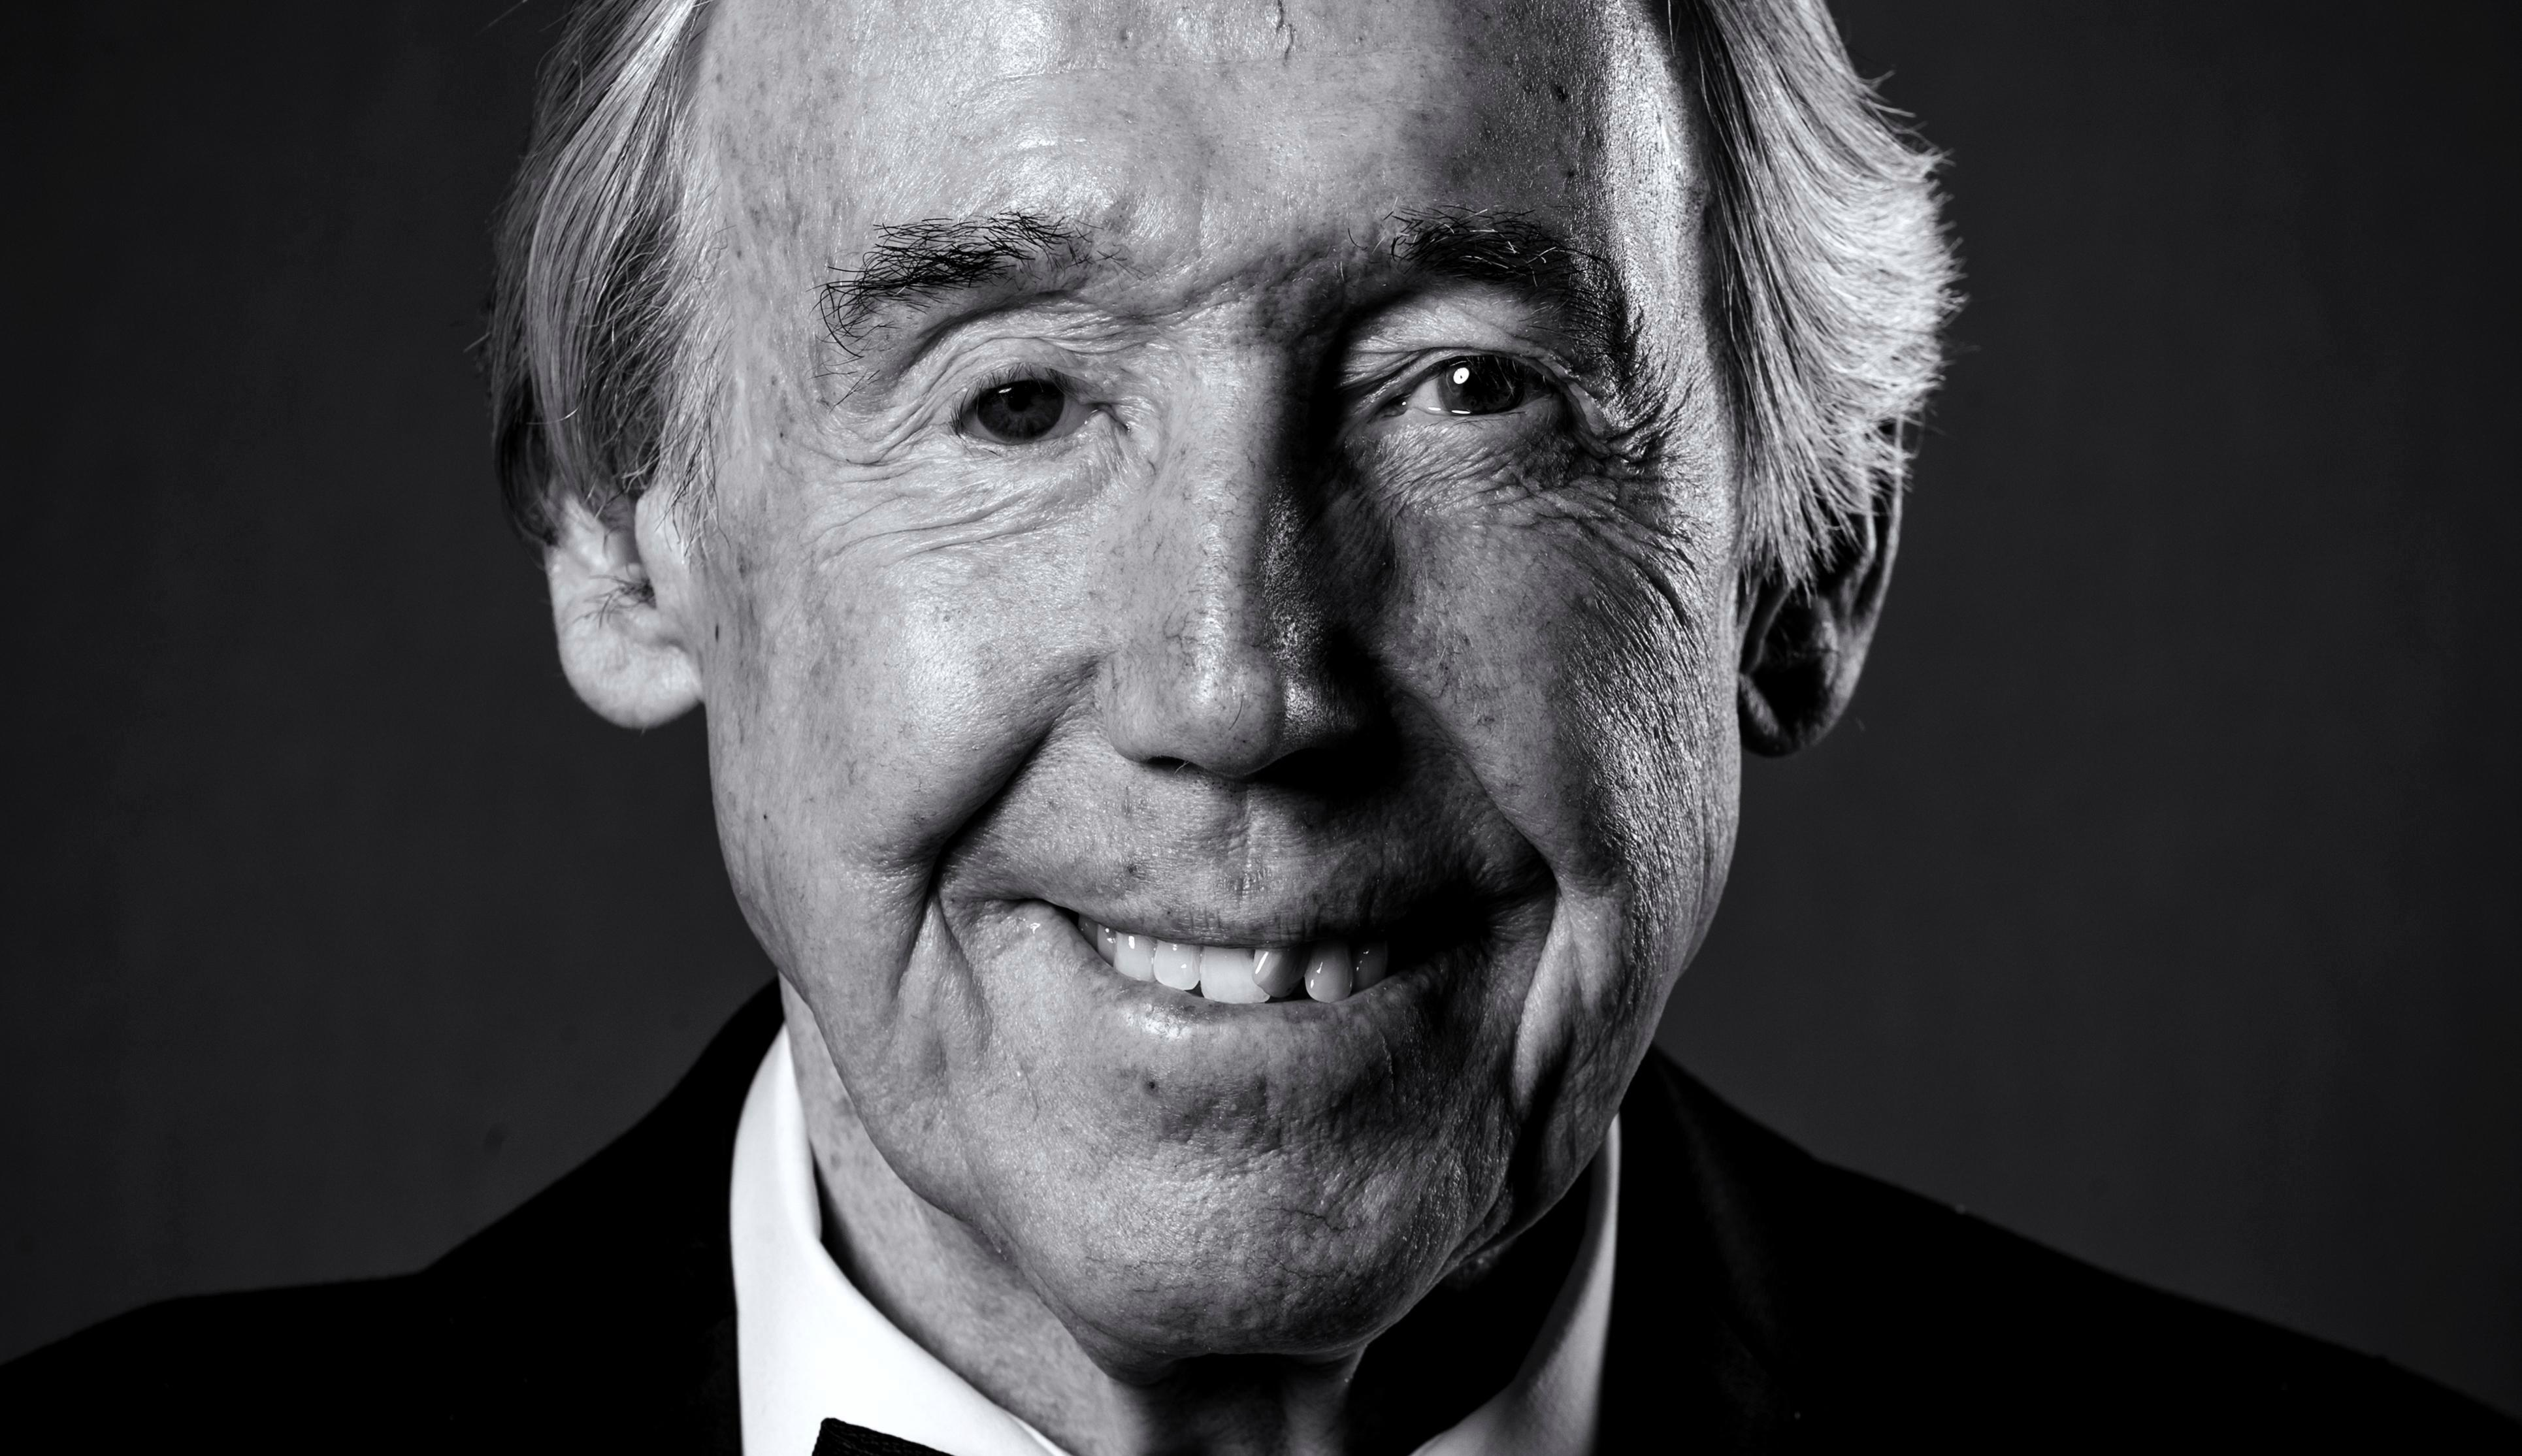 Gordon Banks – The World Cup winner who insisted he wouldn't swap his 1966 memories for all the riches of the modern game